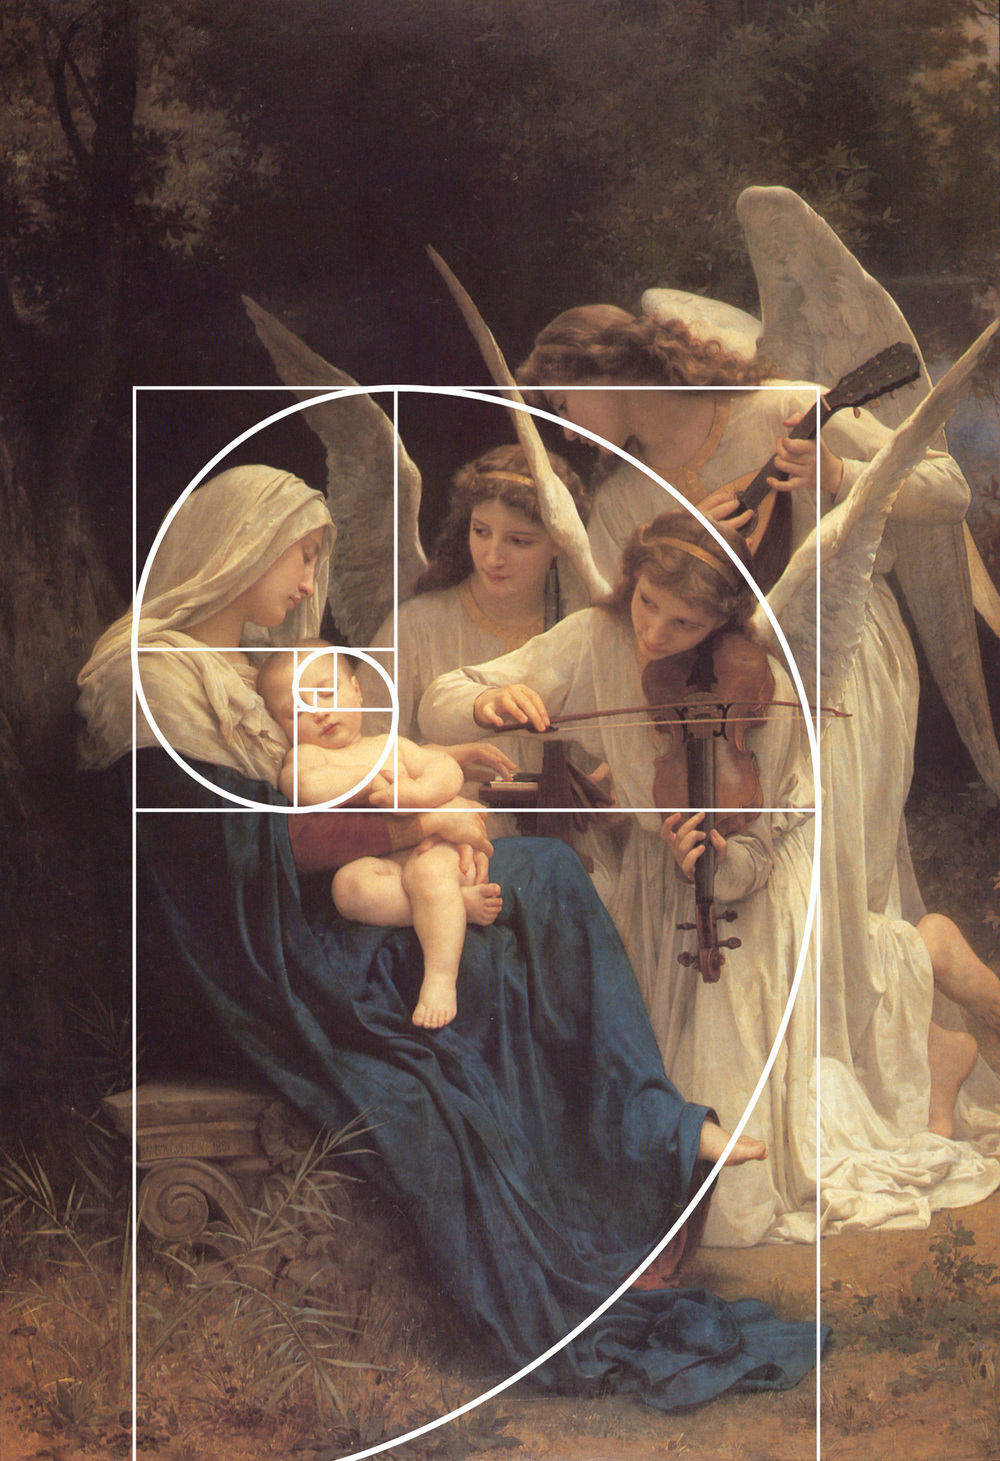 9 - Bouguereau,_Le_chant_des_anges,_1881_(5589769897)2.jpg